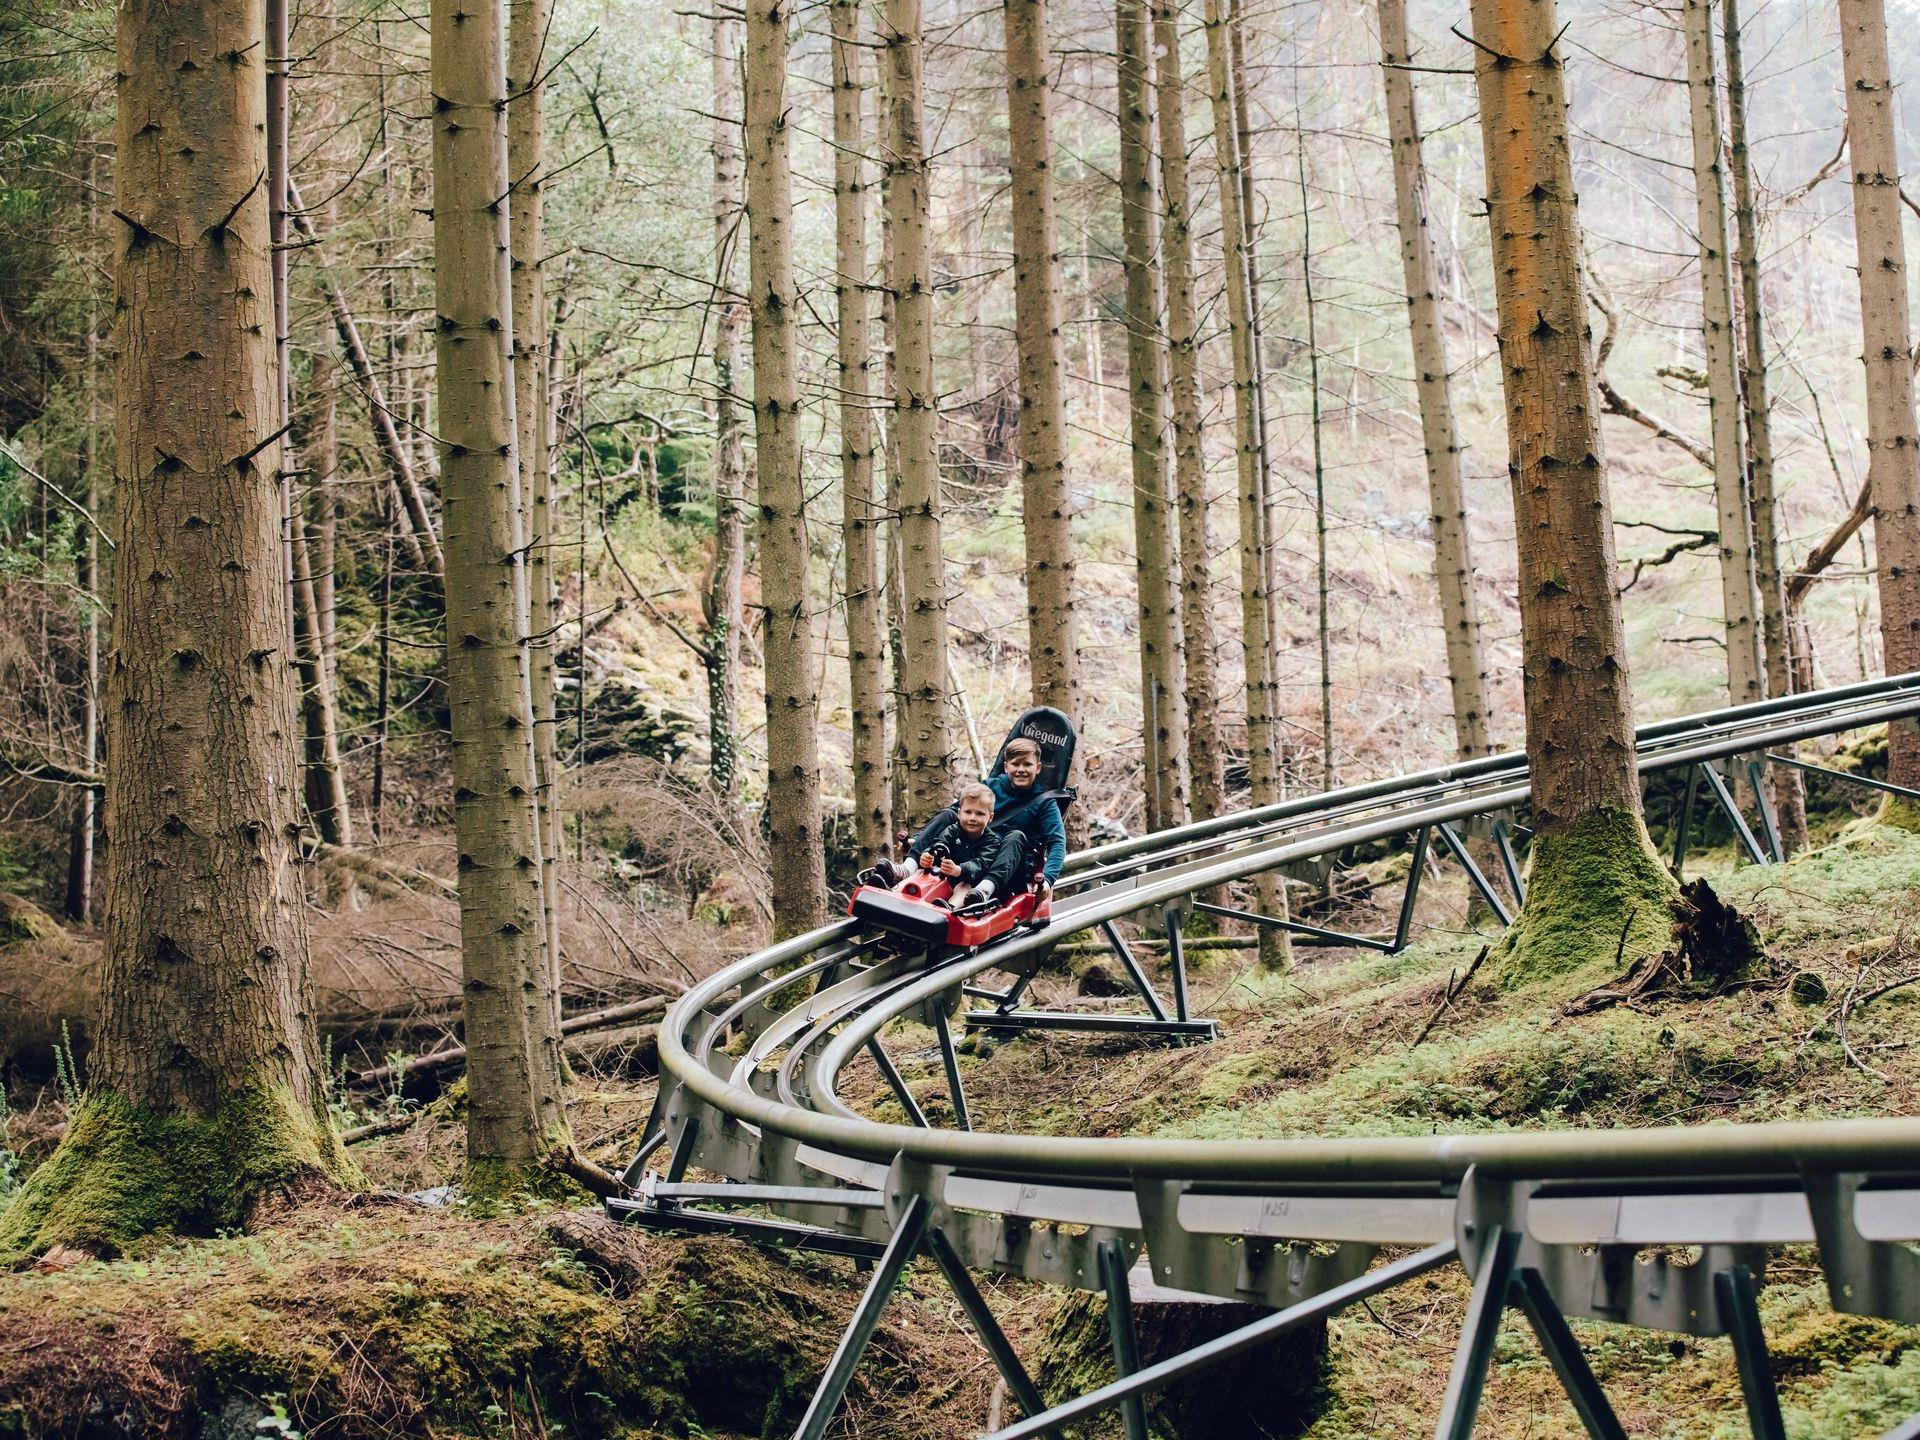 Europe's only alpine coaster of its kind